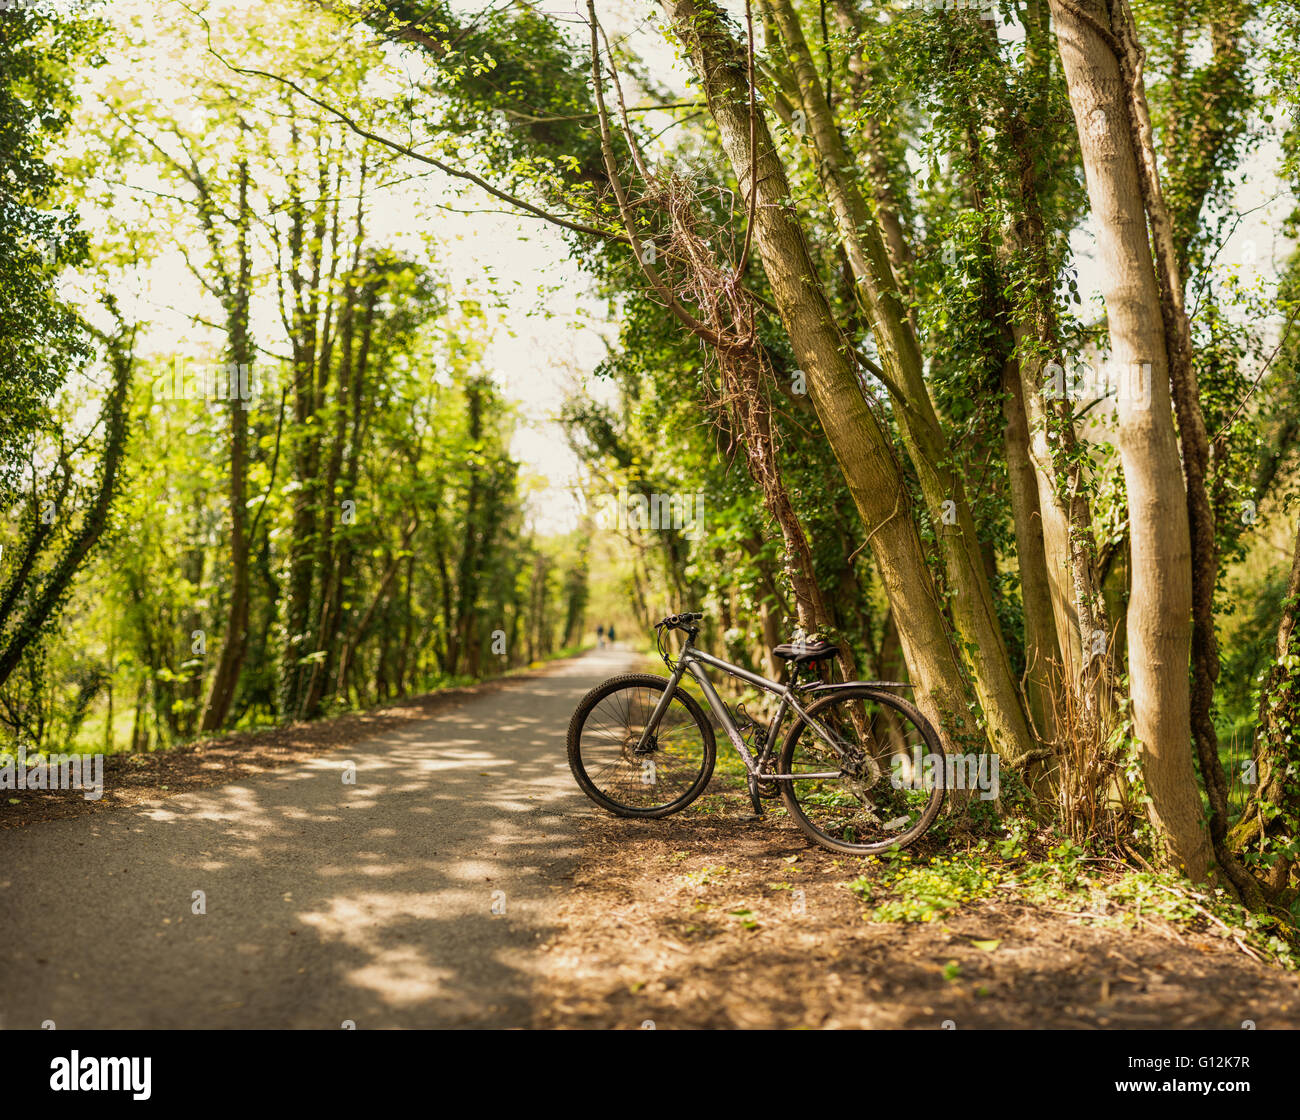 bicycle left on the path in the forest - Stock Image